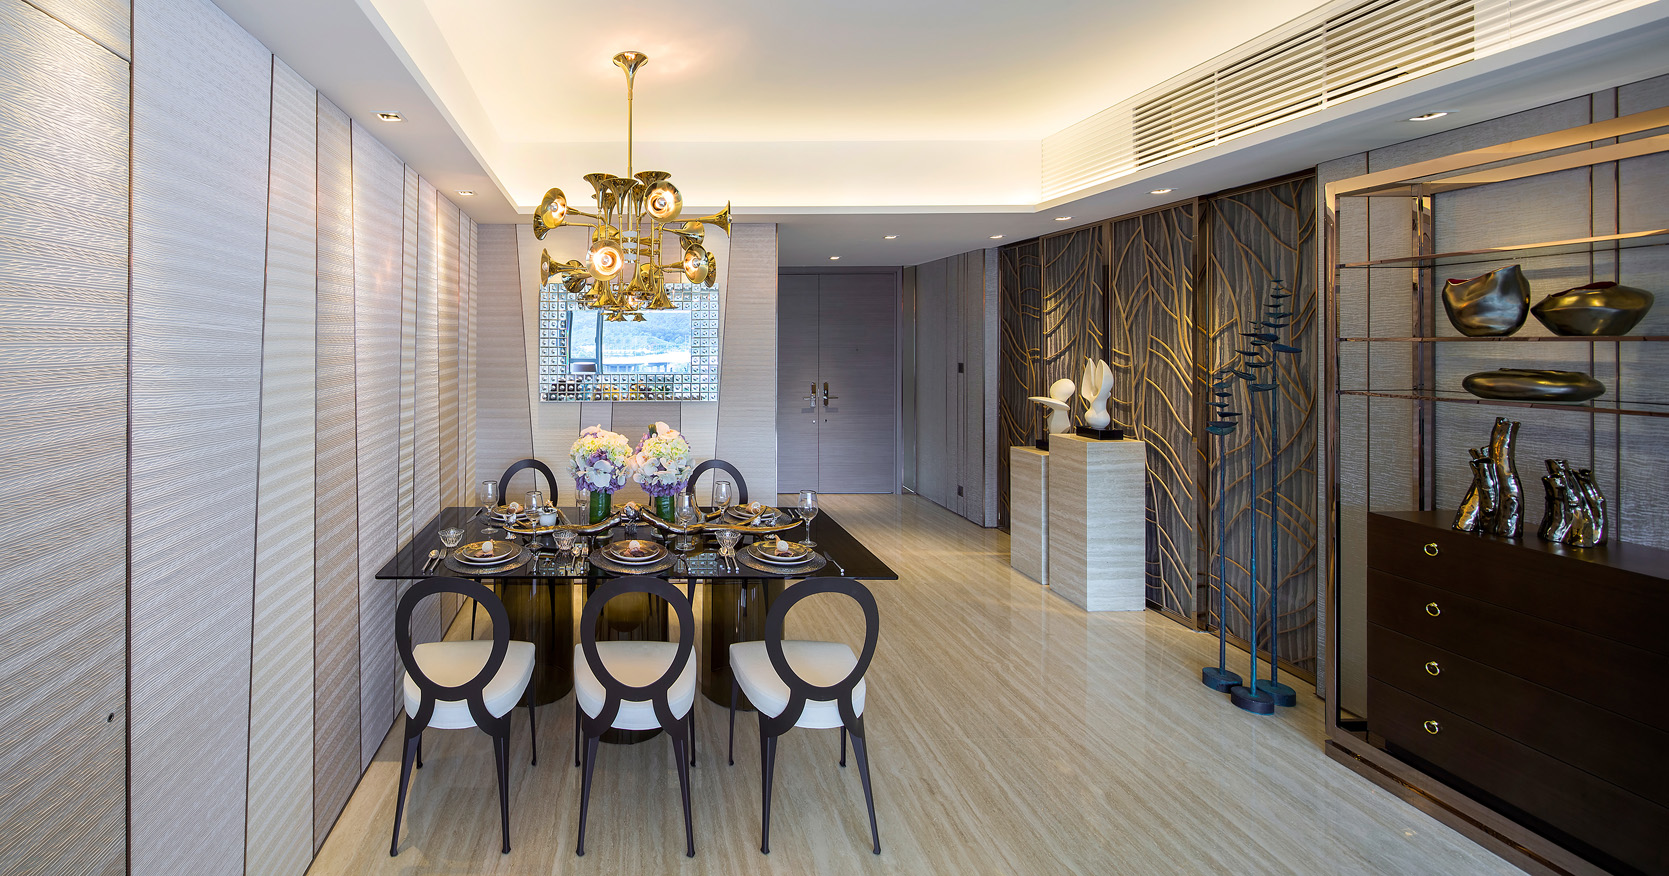 Dining room lighting ideas for a luxury interior homes in Texas The most sophisticated homes in Texas Dining room lighting ideas Delightfull Botti homes in Texas The most sophisticated homes in Texas Dining room lighting ideas Delightfull Botti